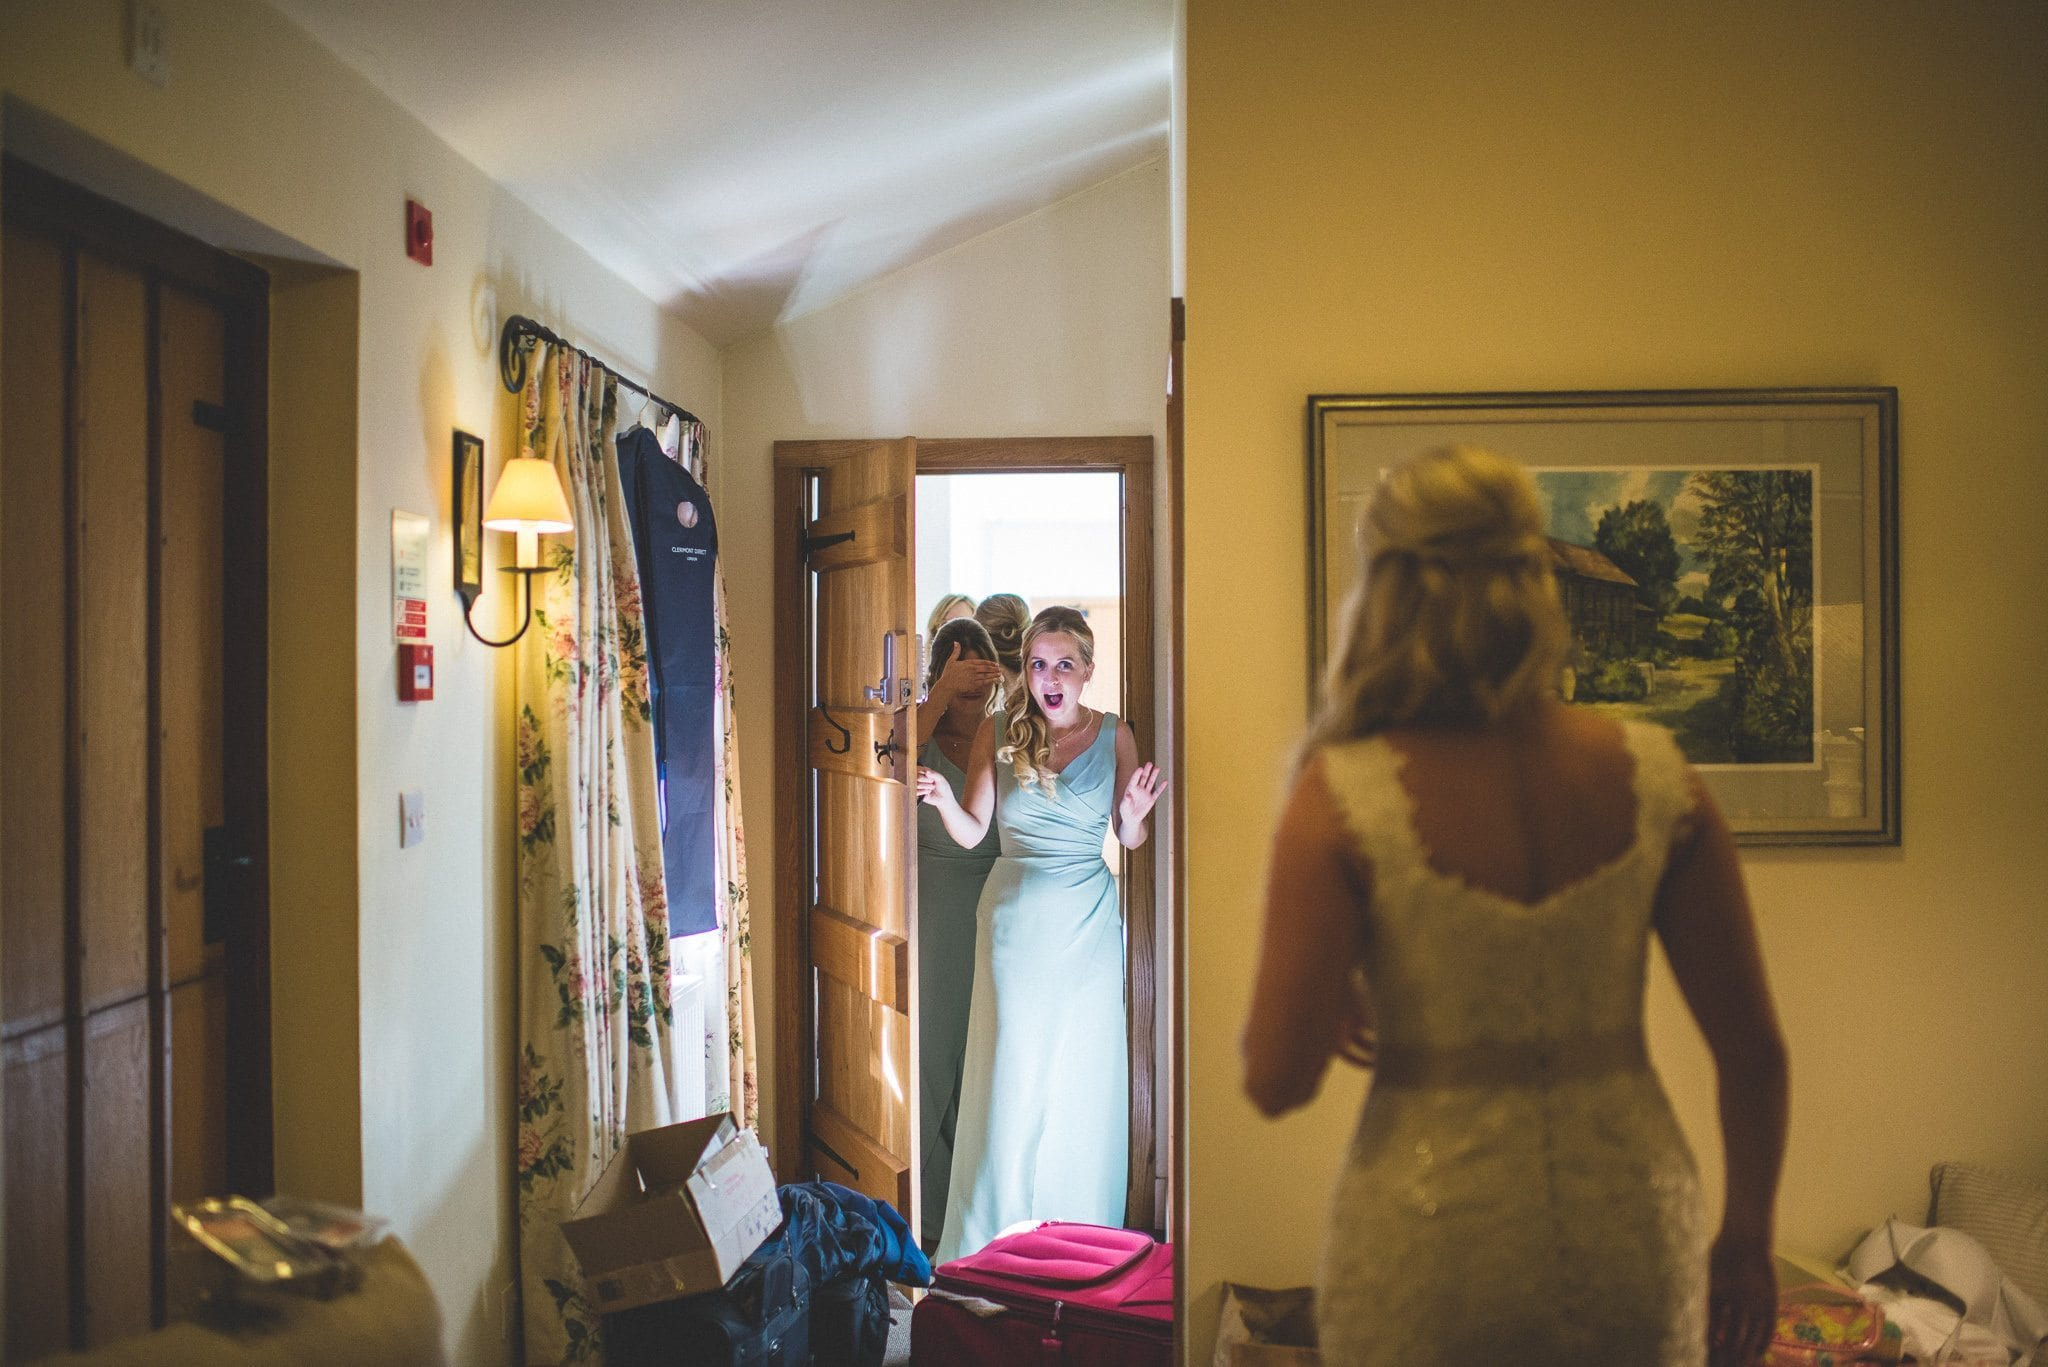 Emma is seen from behind as the bridesmaids enter the room and see her in her dress for the first time